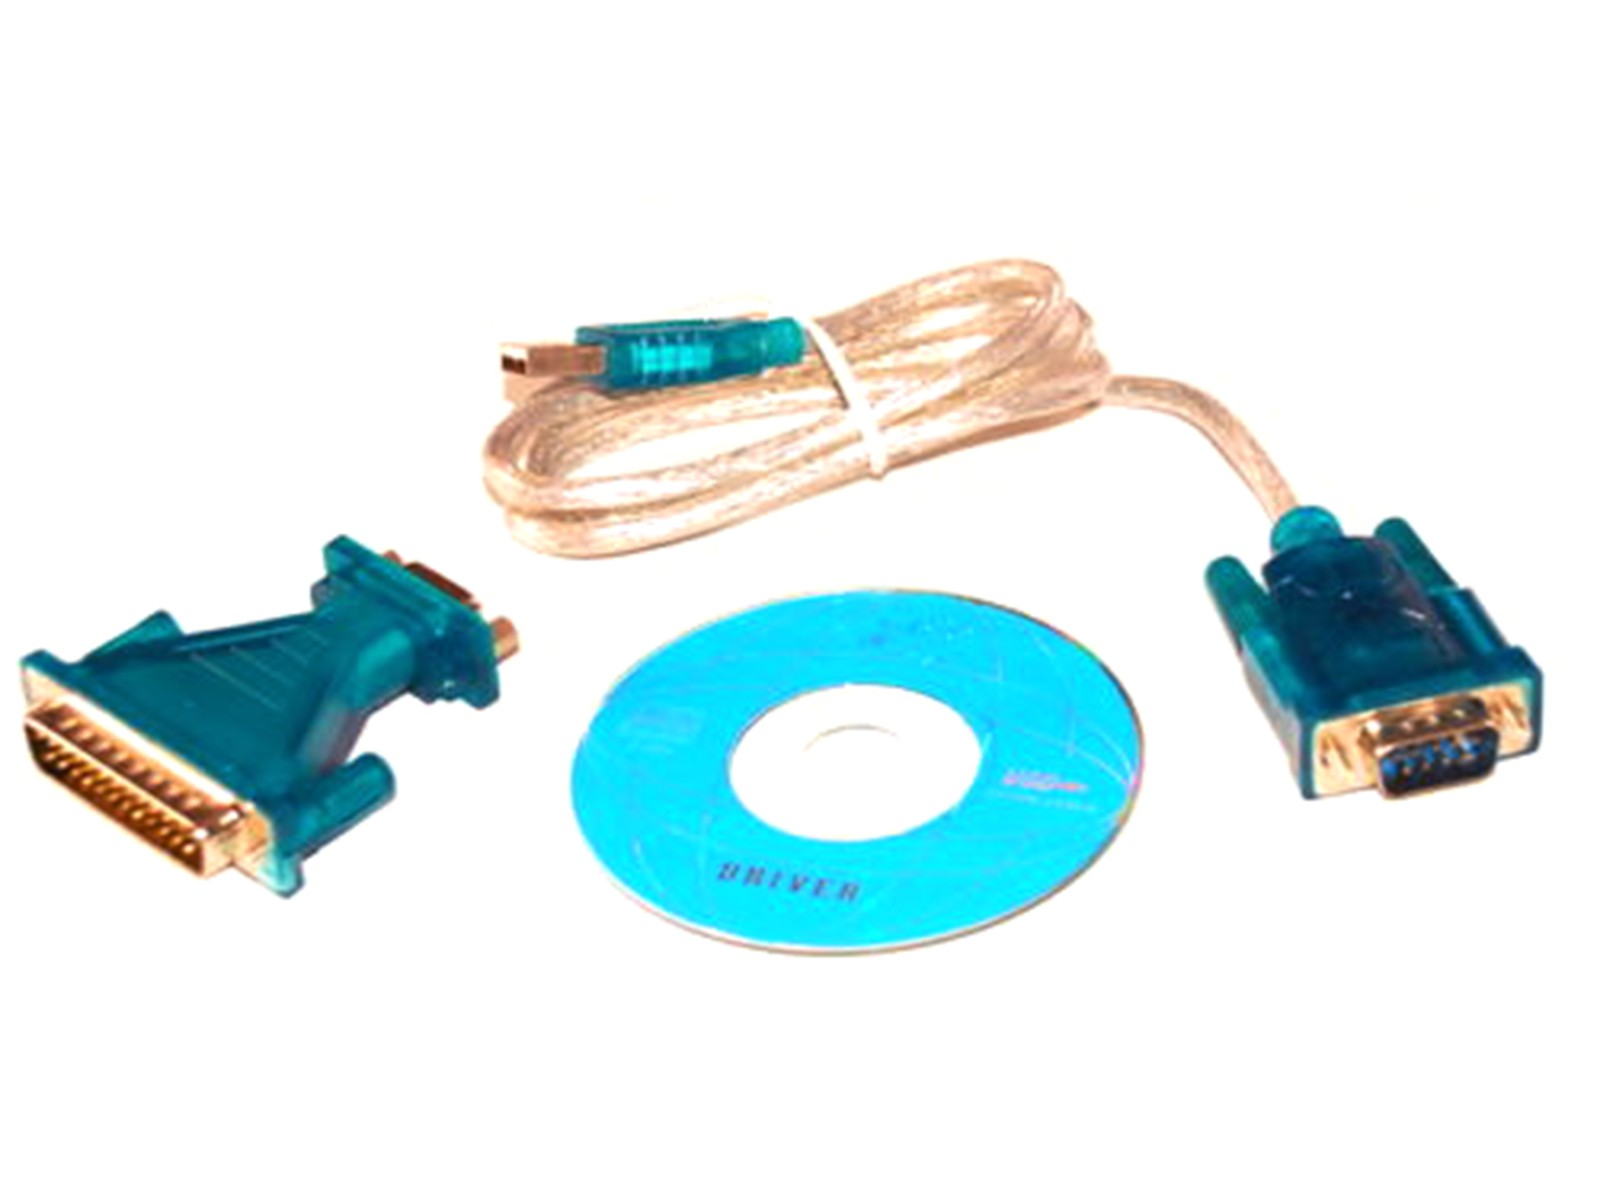 Usb 2.0 To Rs232 Com Port 9 Pin Serial Db25 Db9 Adapter Cable Converter